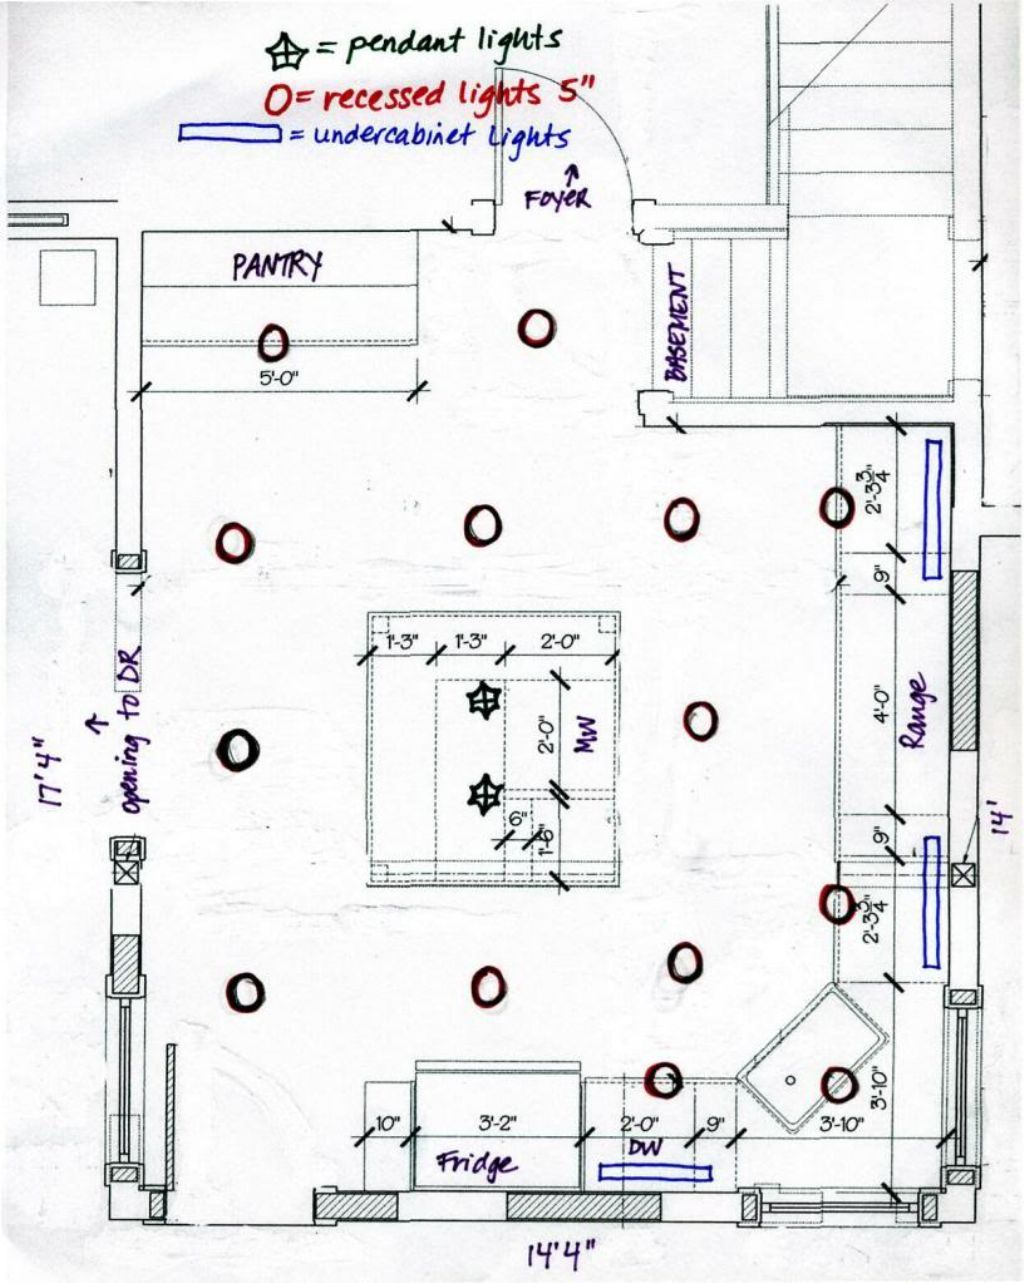 Recessed lighting layout diagram lighting info for Planning a kitchen layout